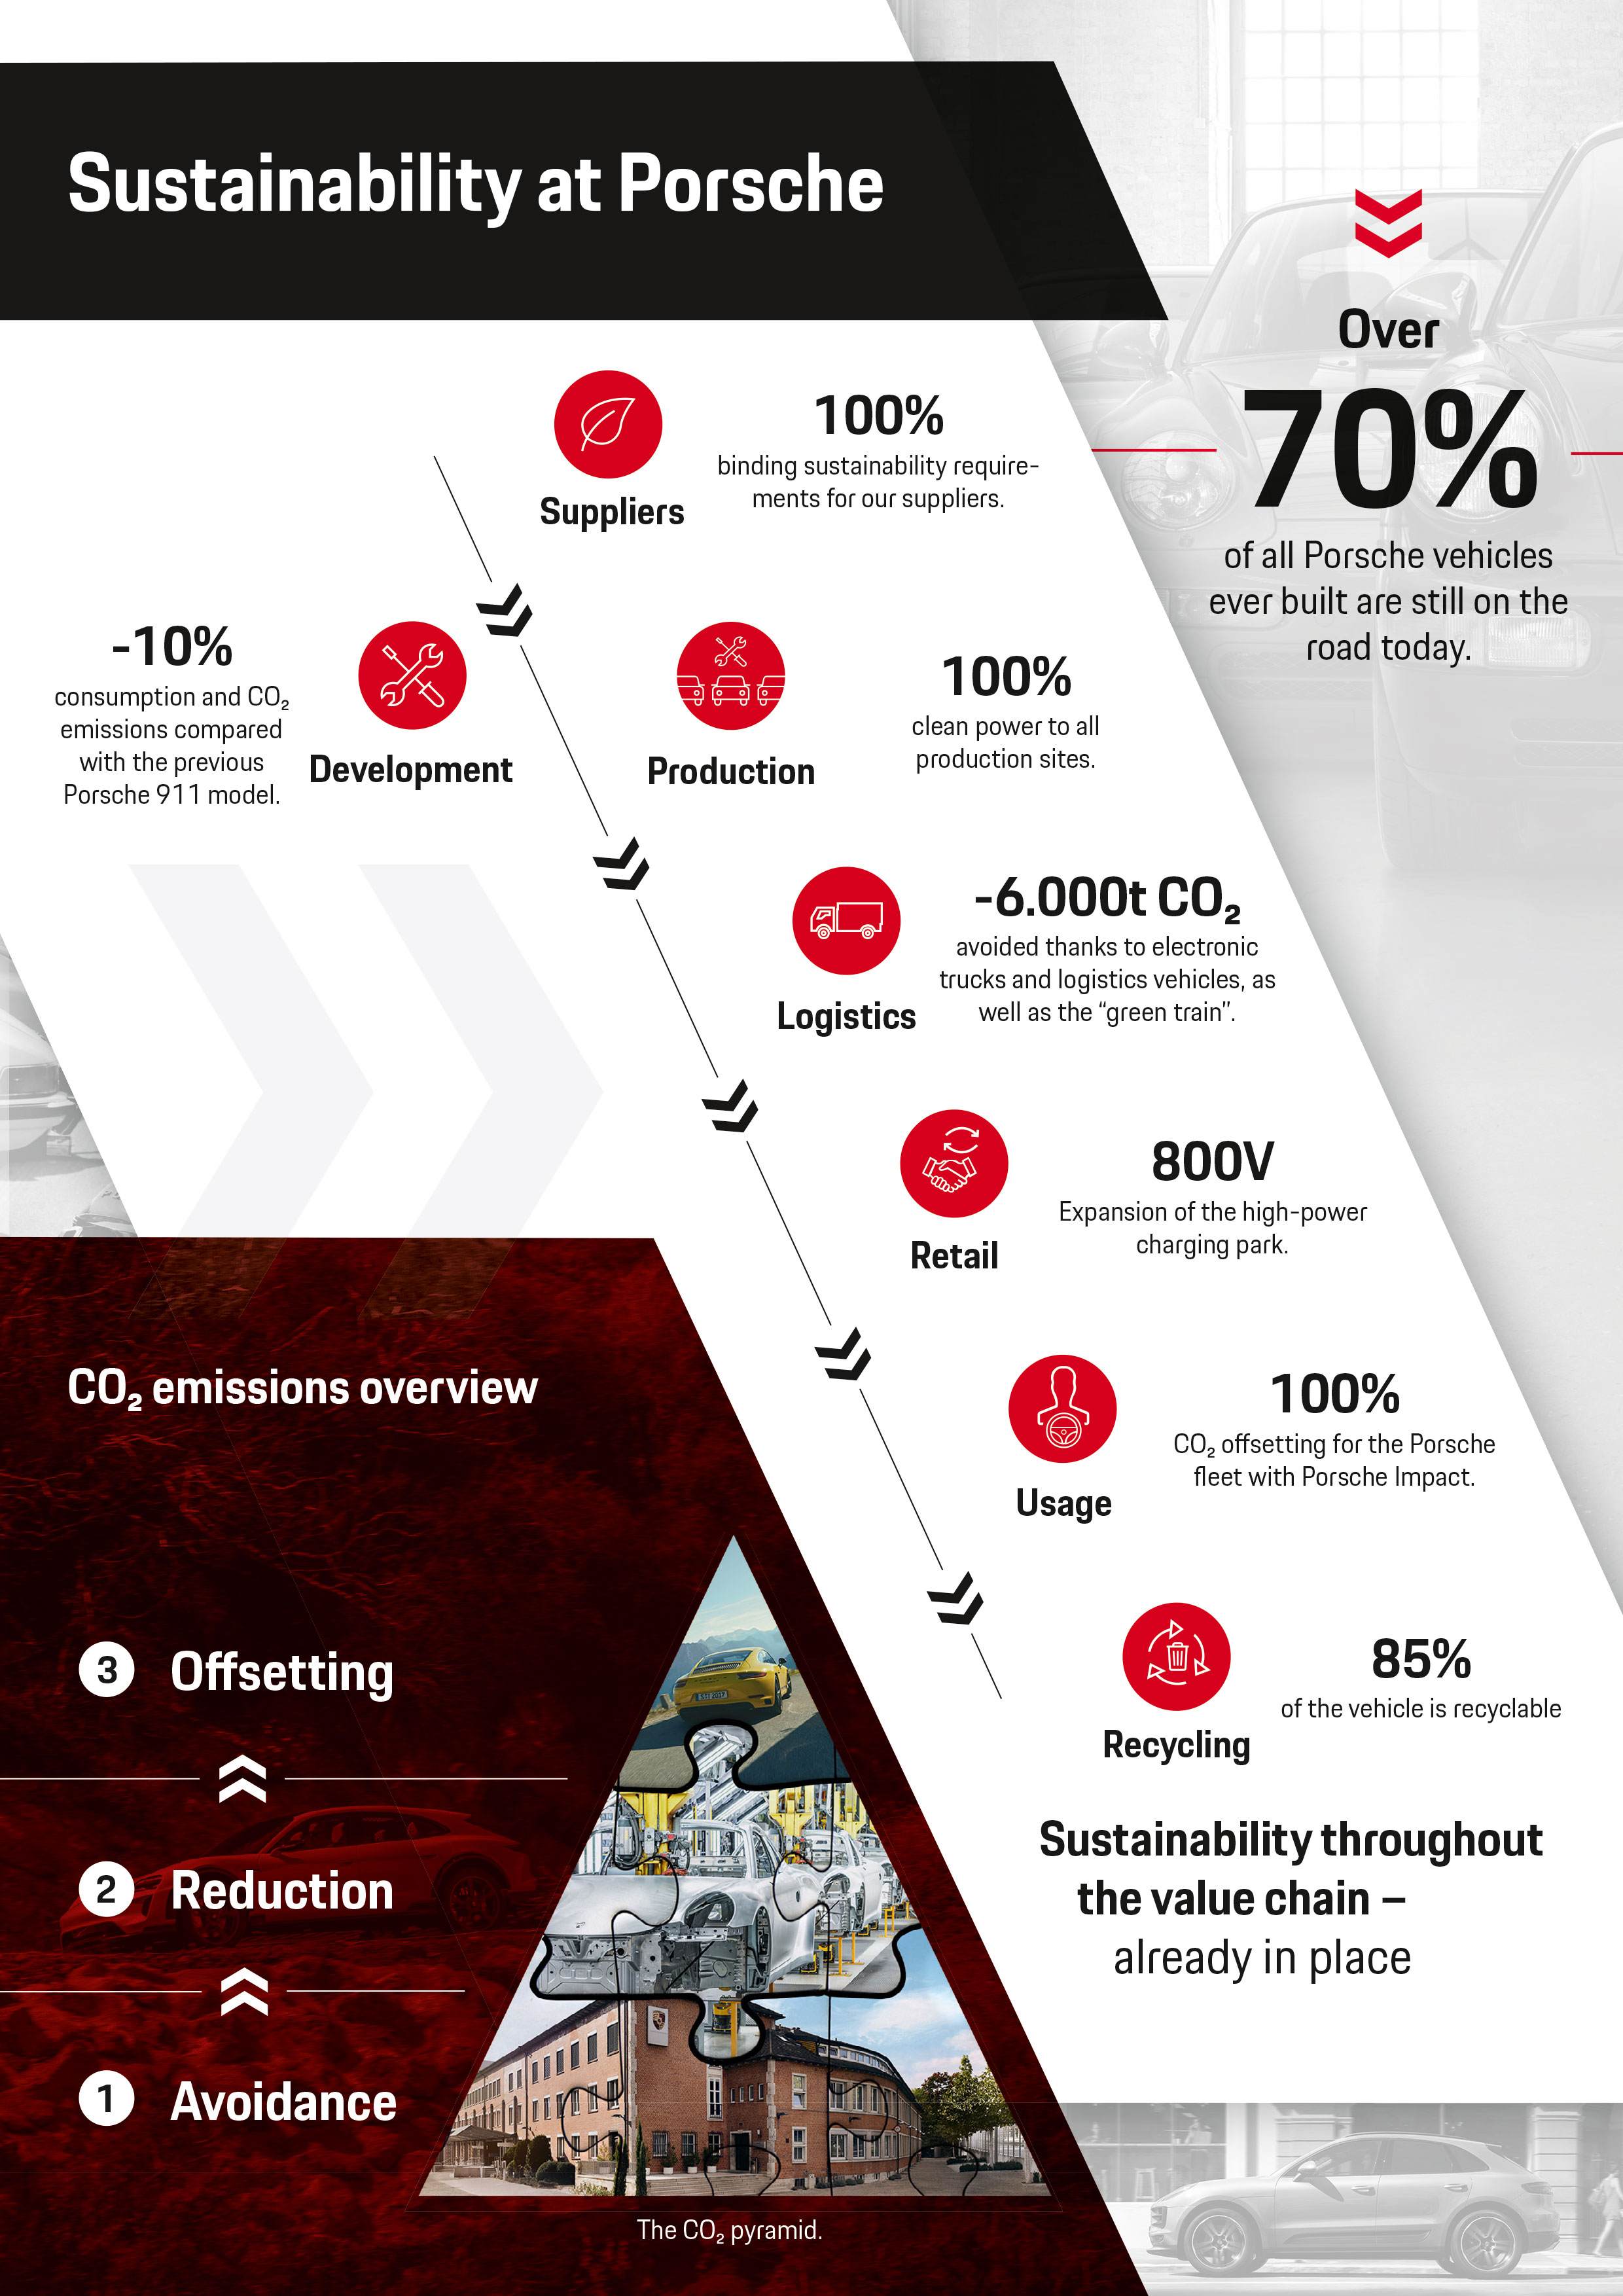 Sustainability at Porsche, infographic, 2018, Porsche AG